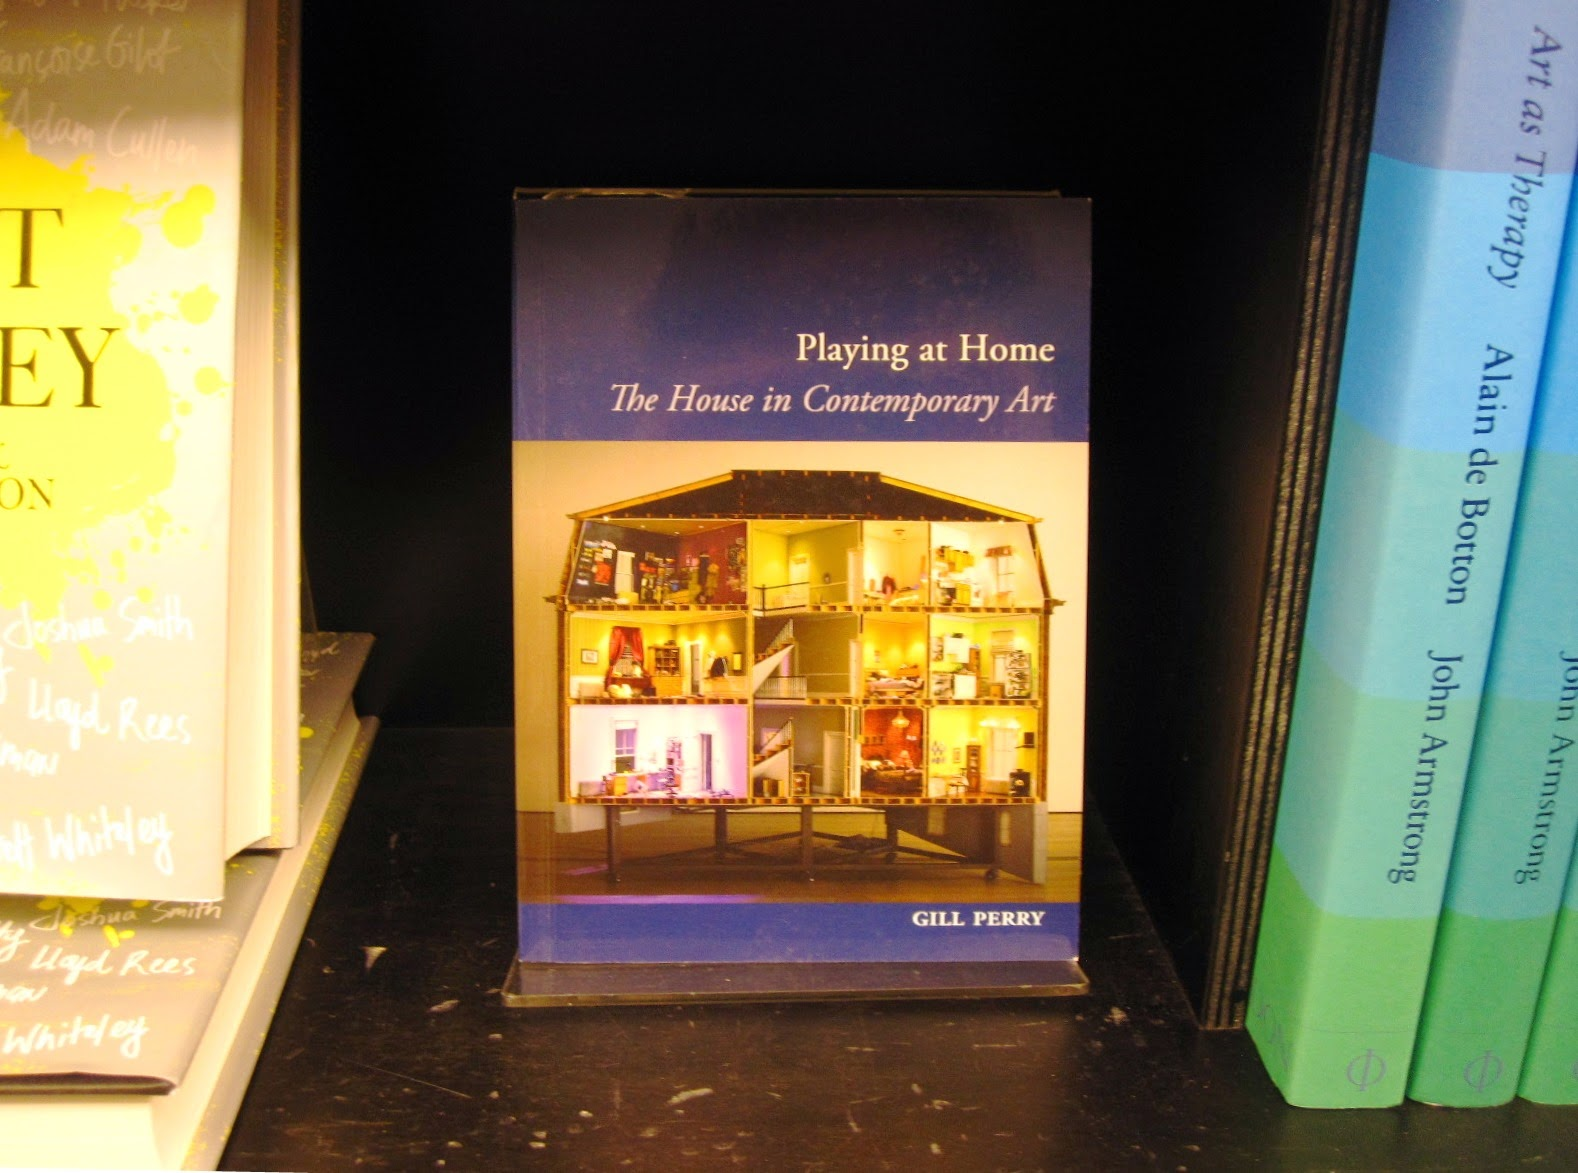 The book 'The house as contemporary art' on display in a shop.